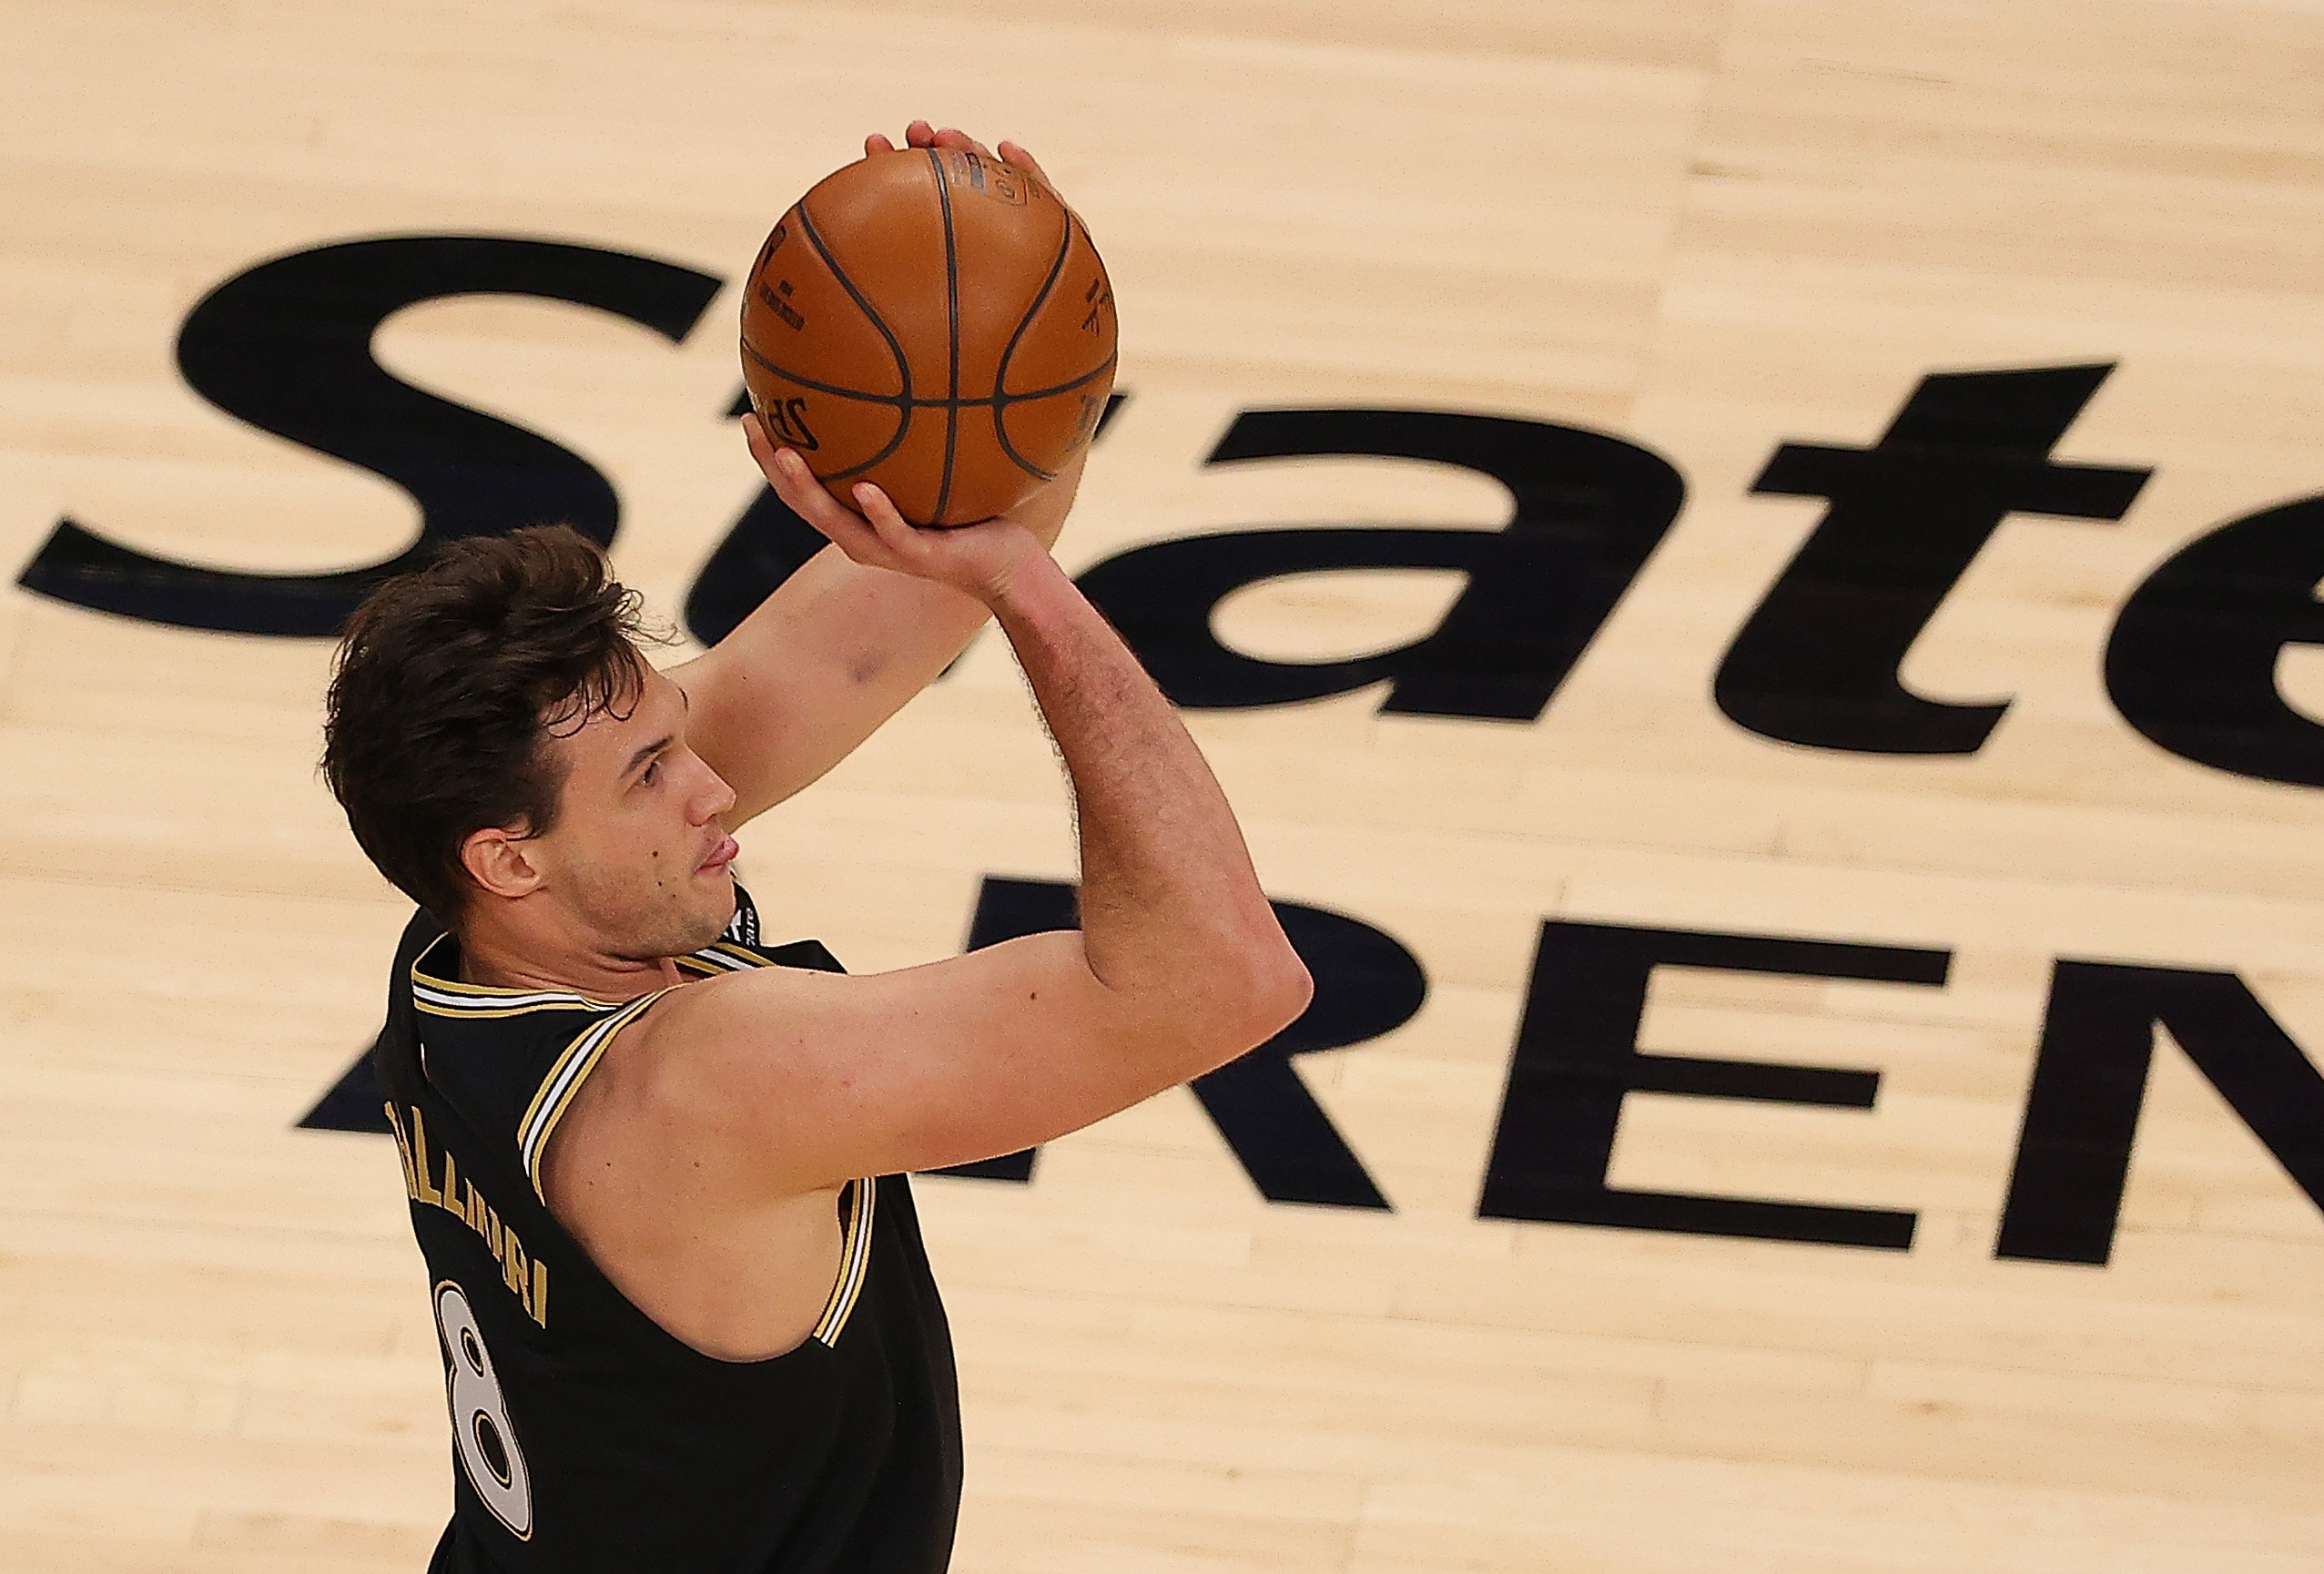 NBA – Gallinari da record, Atlanta batte Boston